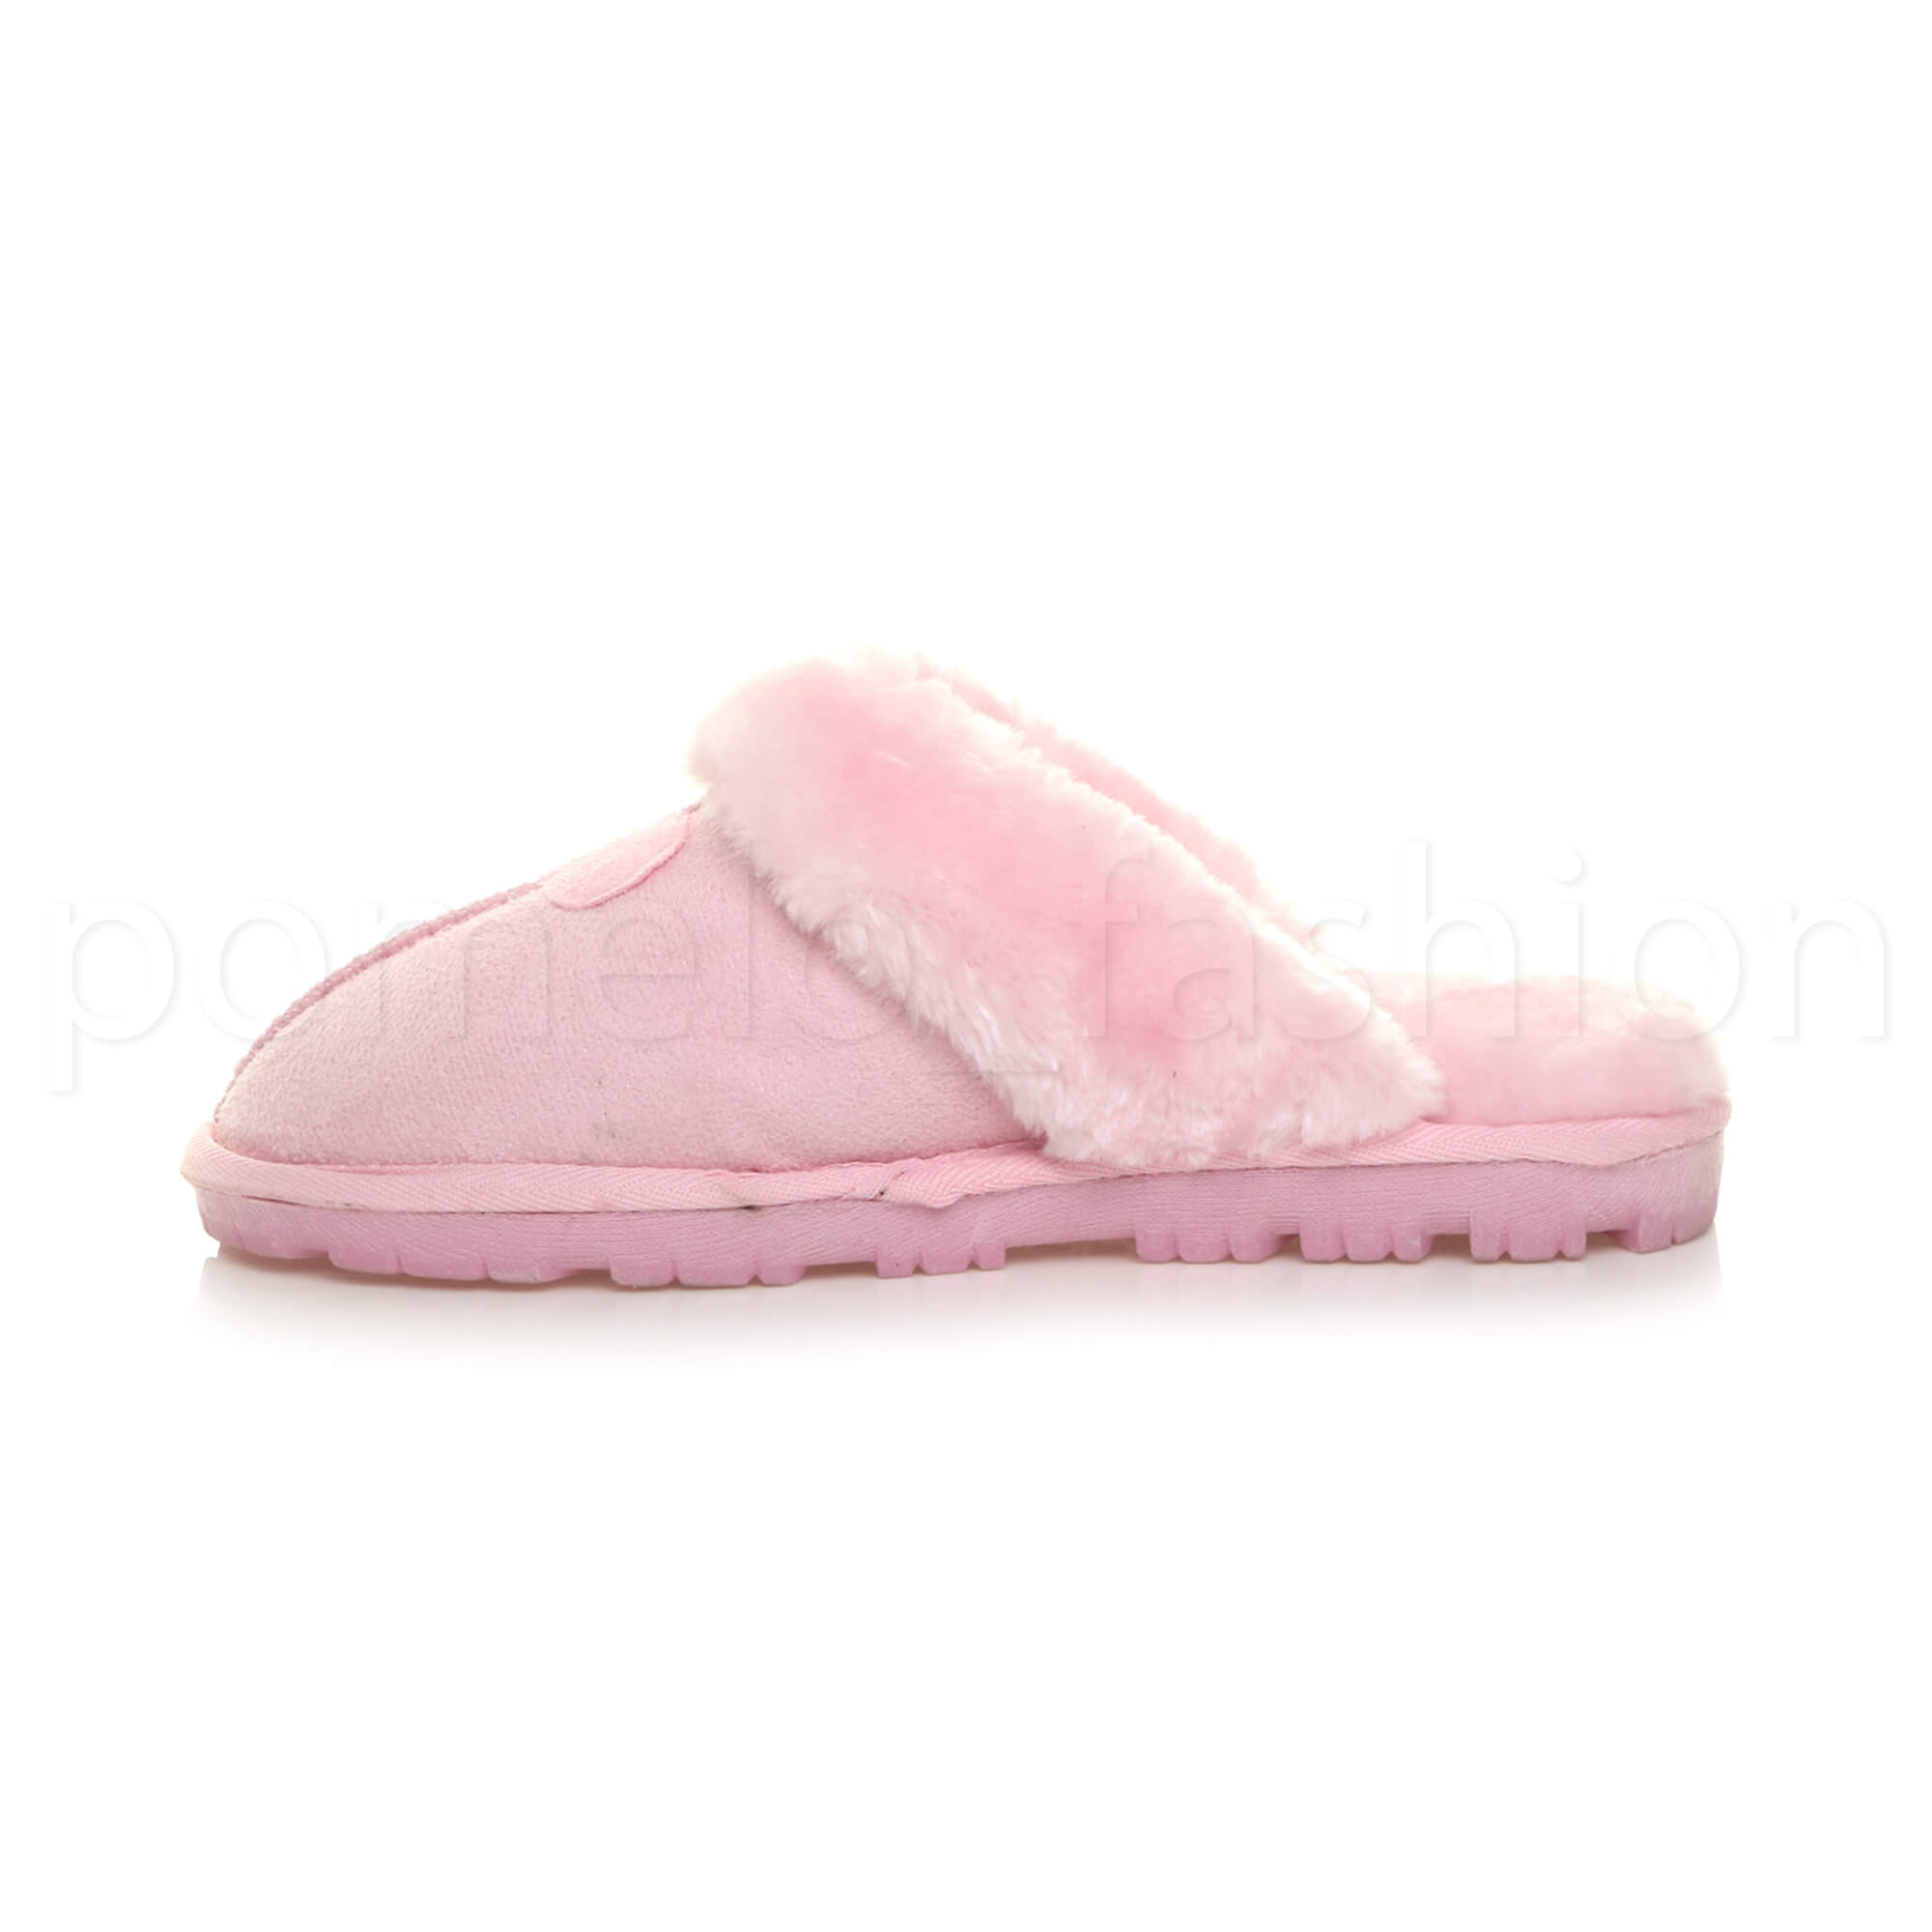 WOMENS-LADIES-FLAT-FUR-LINED-COMFORTABLE-WINTER-MULES-SLIPPERS-HOUSE-SHOES-SIZE thumbnail 67